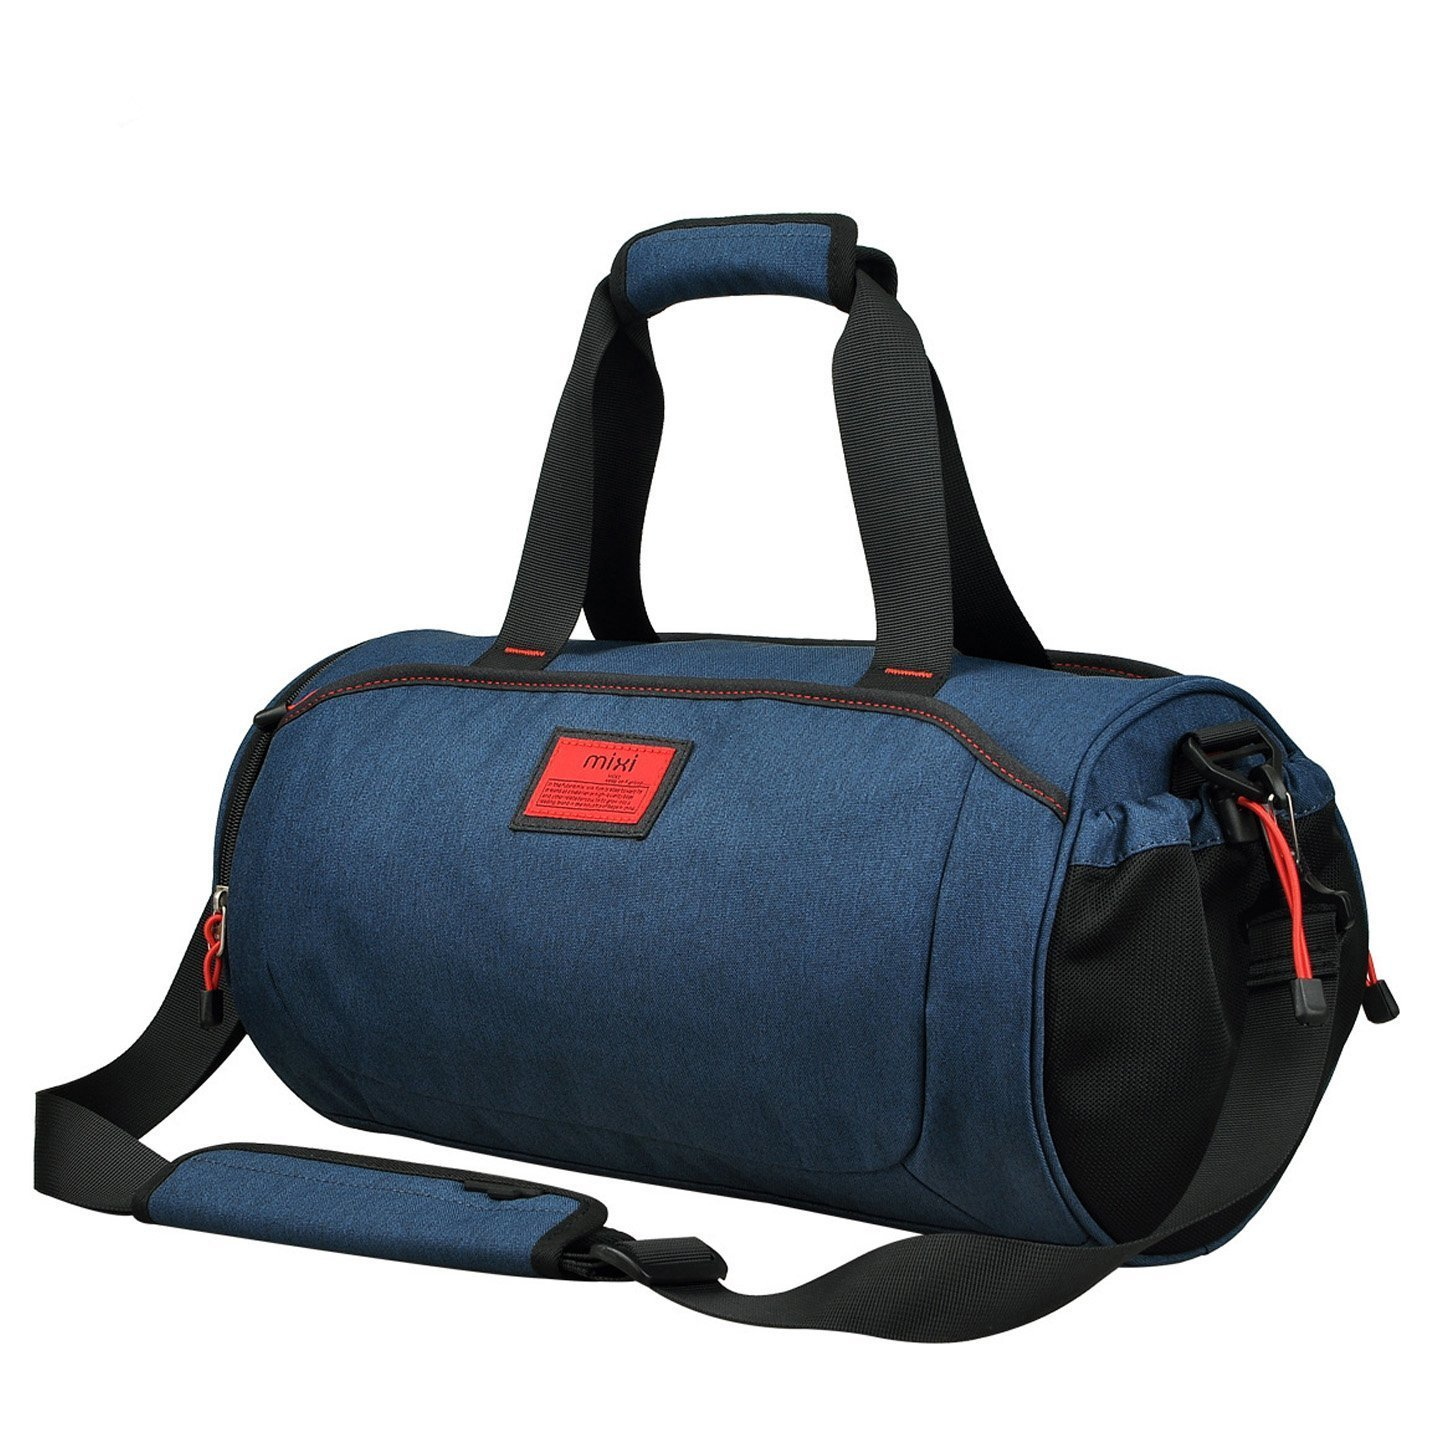 Cool NEW Duffel Style Carry On Sports Travel Bag with Shoulder Strap, Zippered Compartments